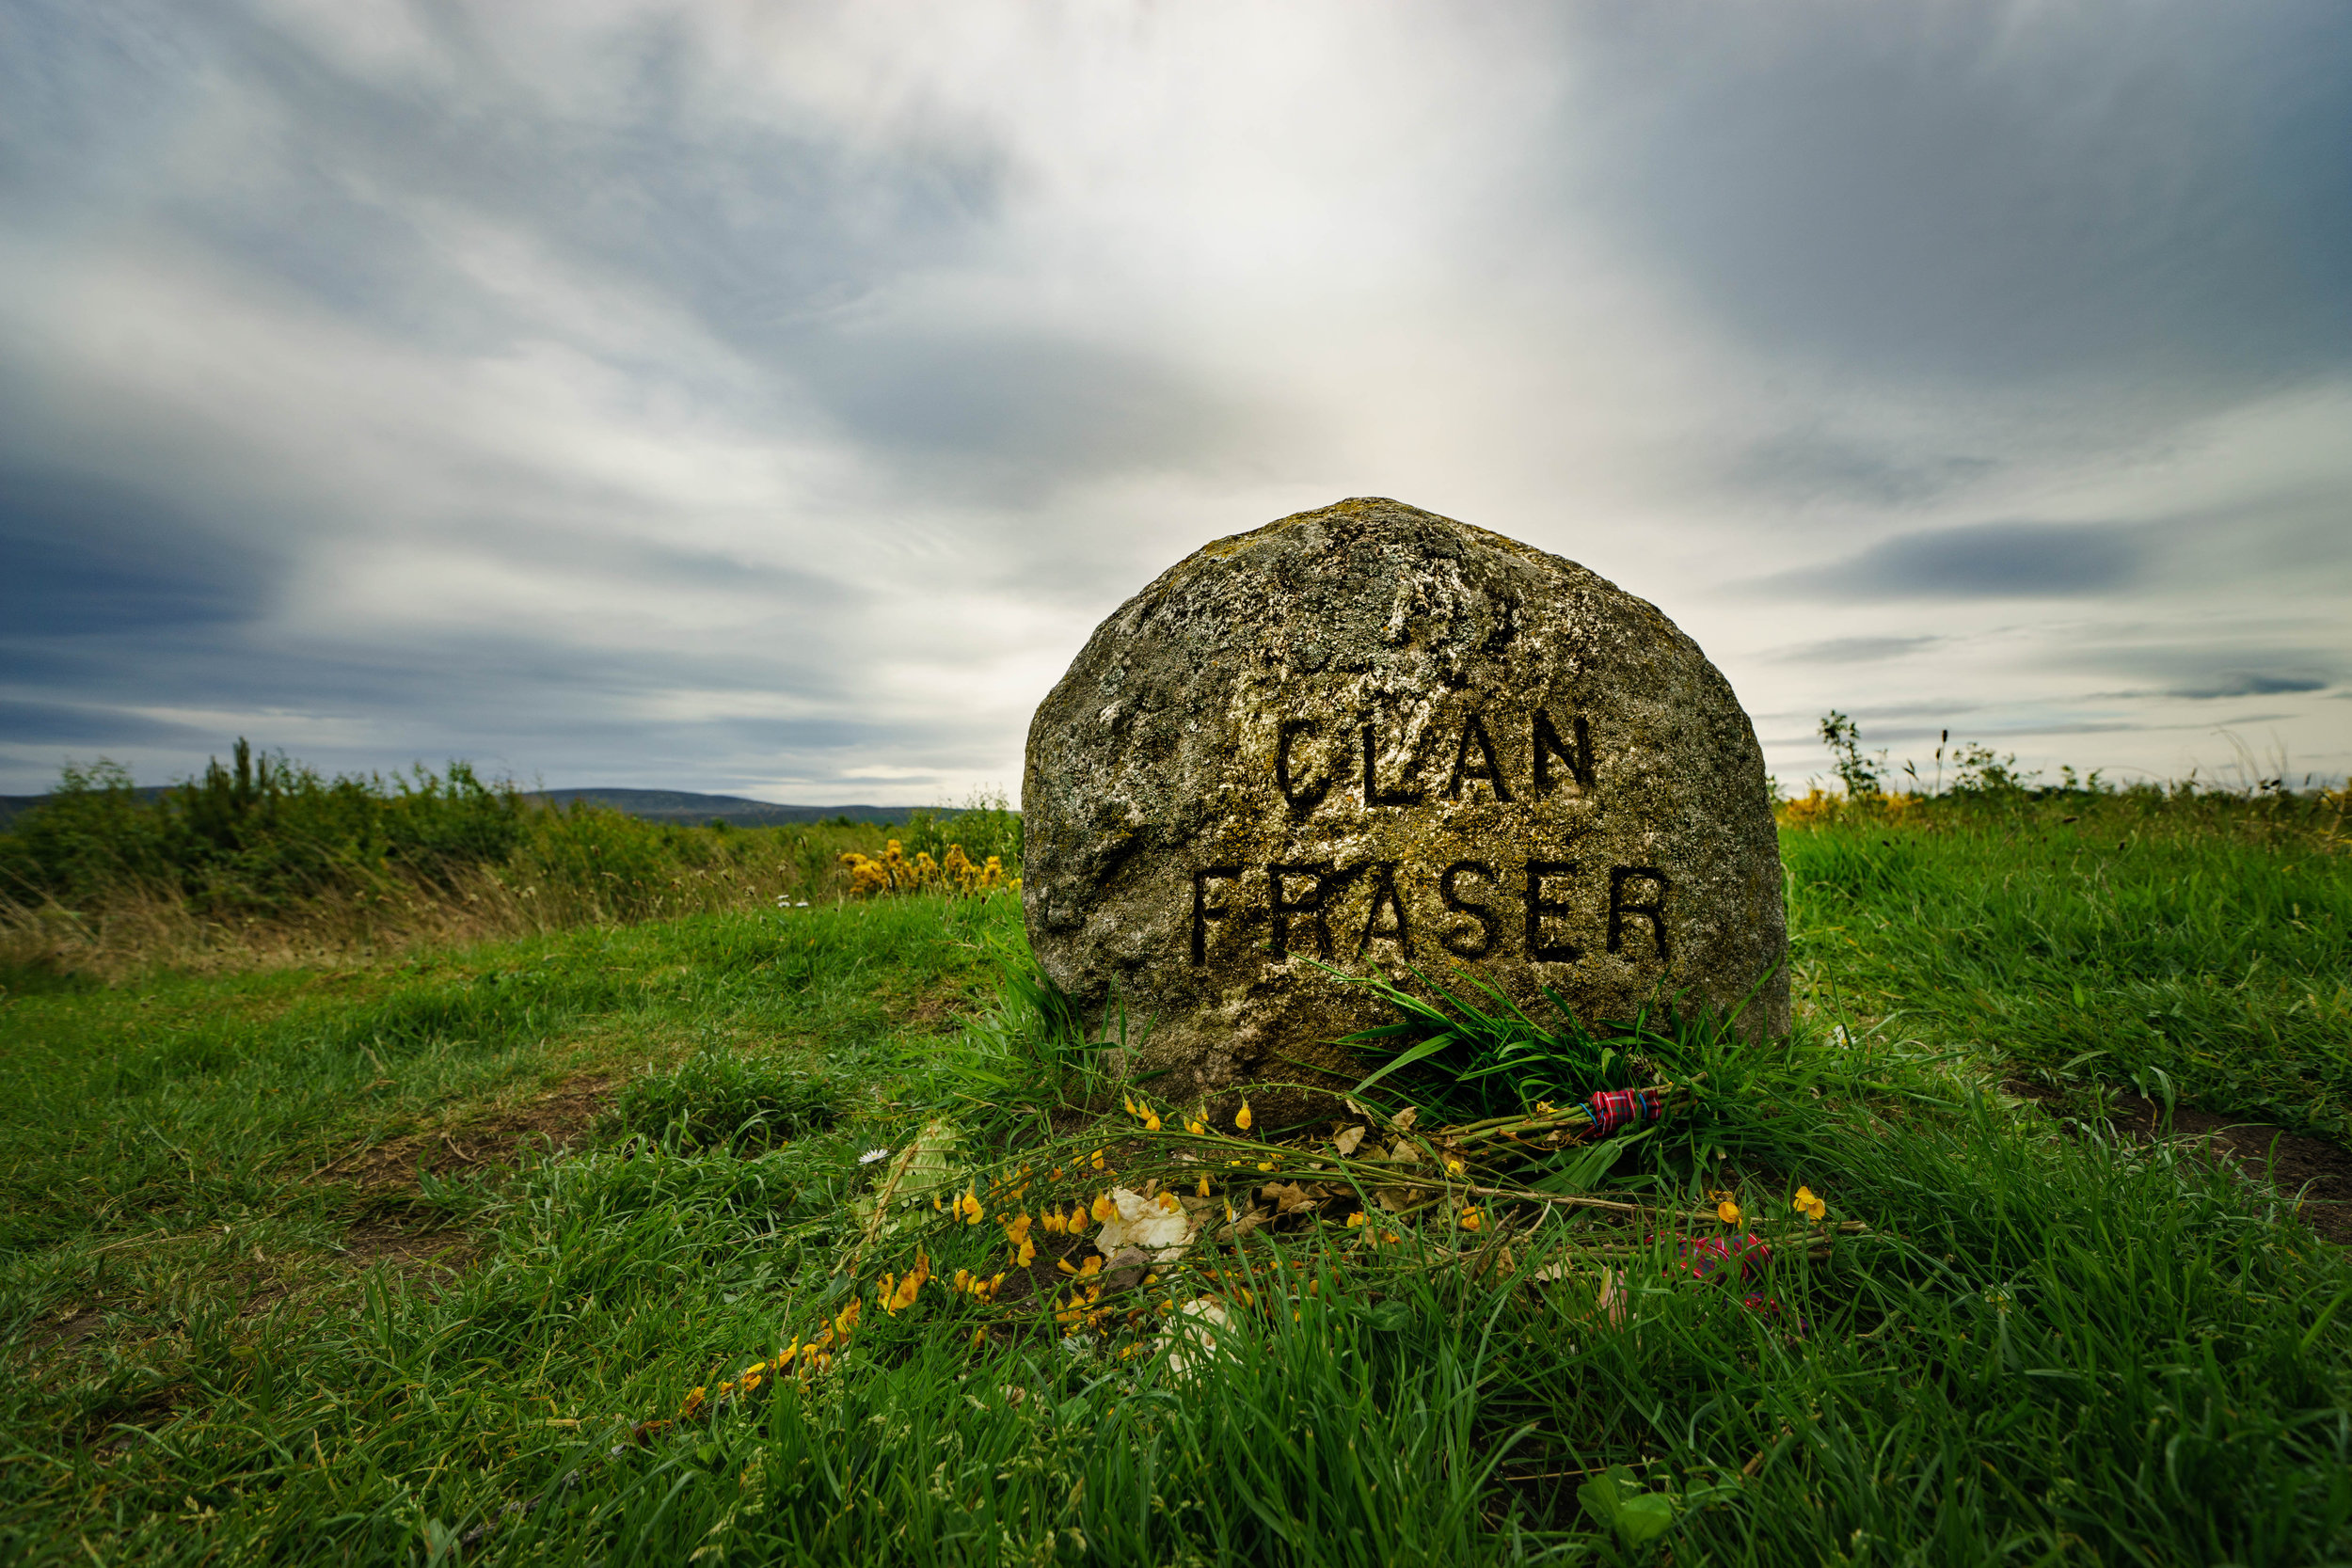 """One of many clan headstones placed in the 1880's by Duncan Forbes. Because of the popular Starz TV drama """"Outlander"""" and it's fictional lead character Jamie Fraser, this marker is often surrounded by visitors to the extent of complaints other clans are being ignored."""